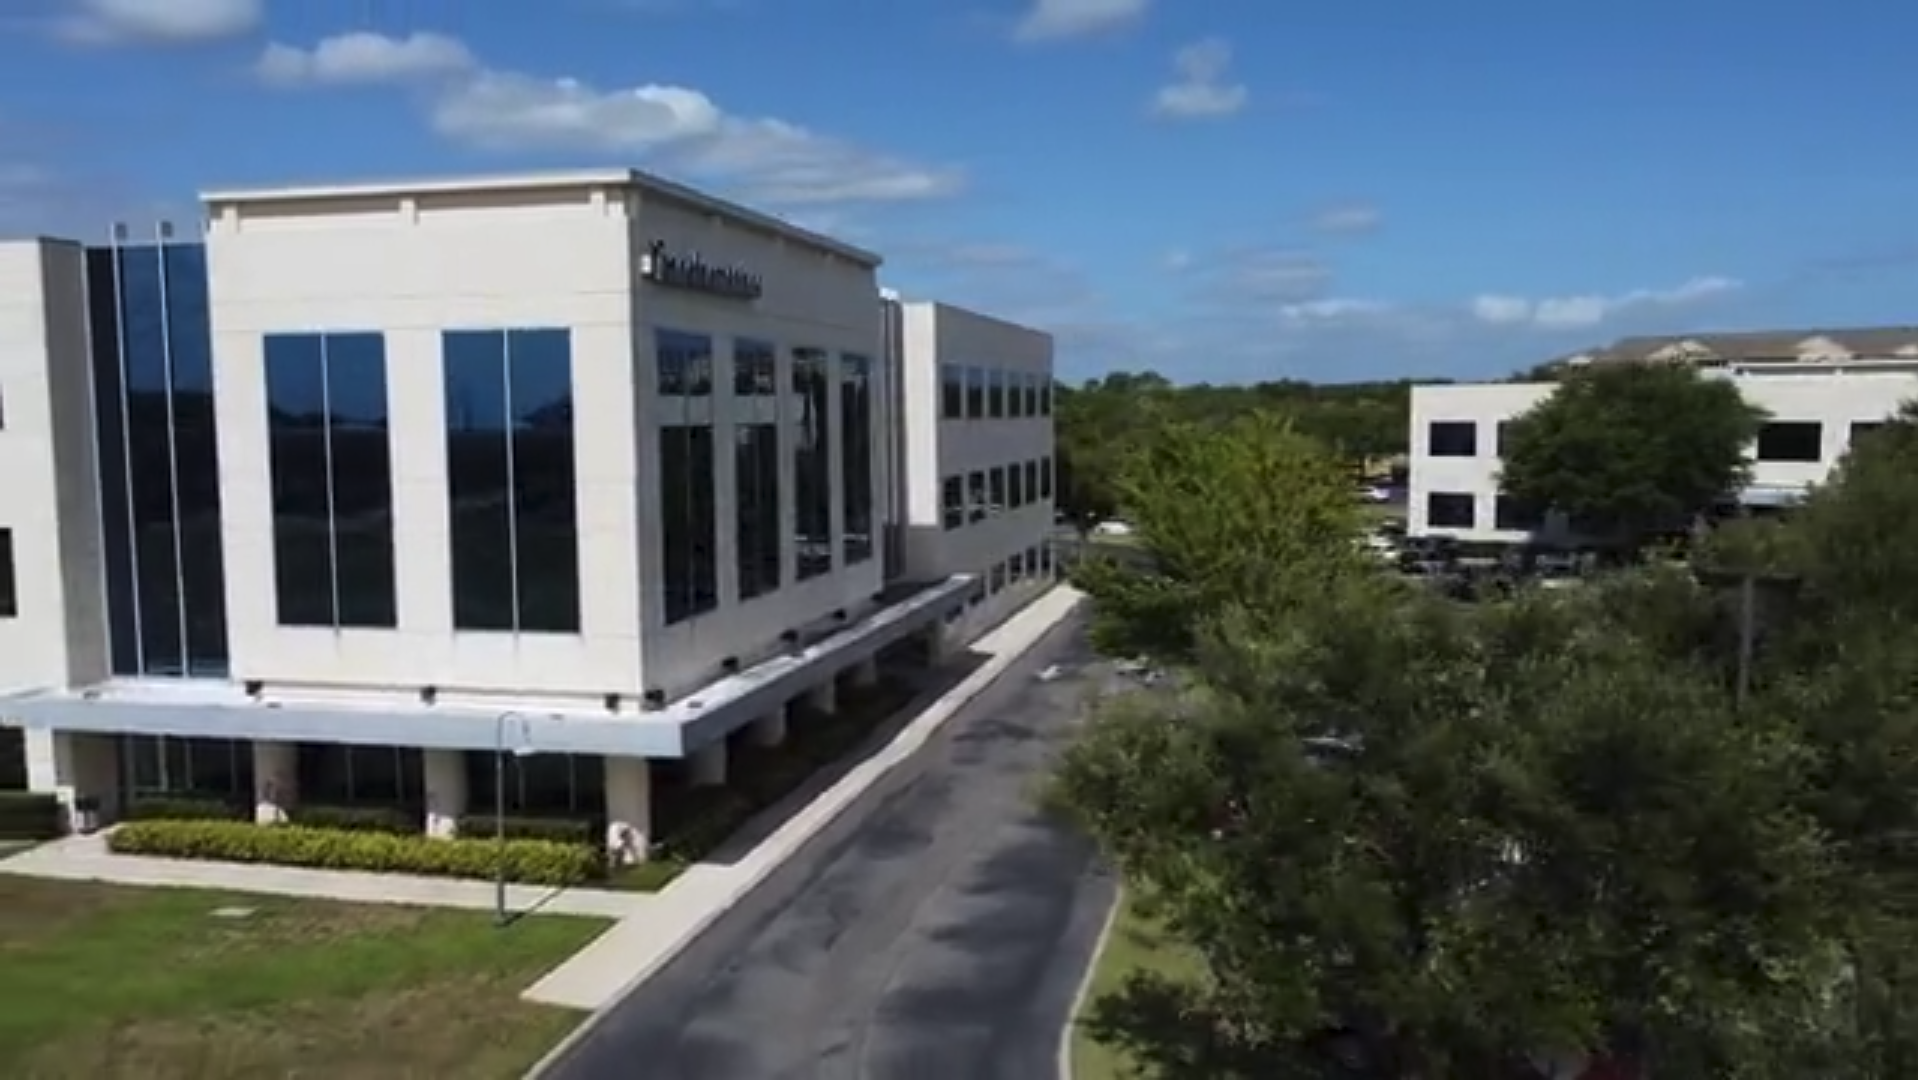 MetroWest Commercial Property Video 2021